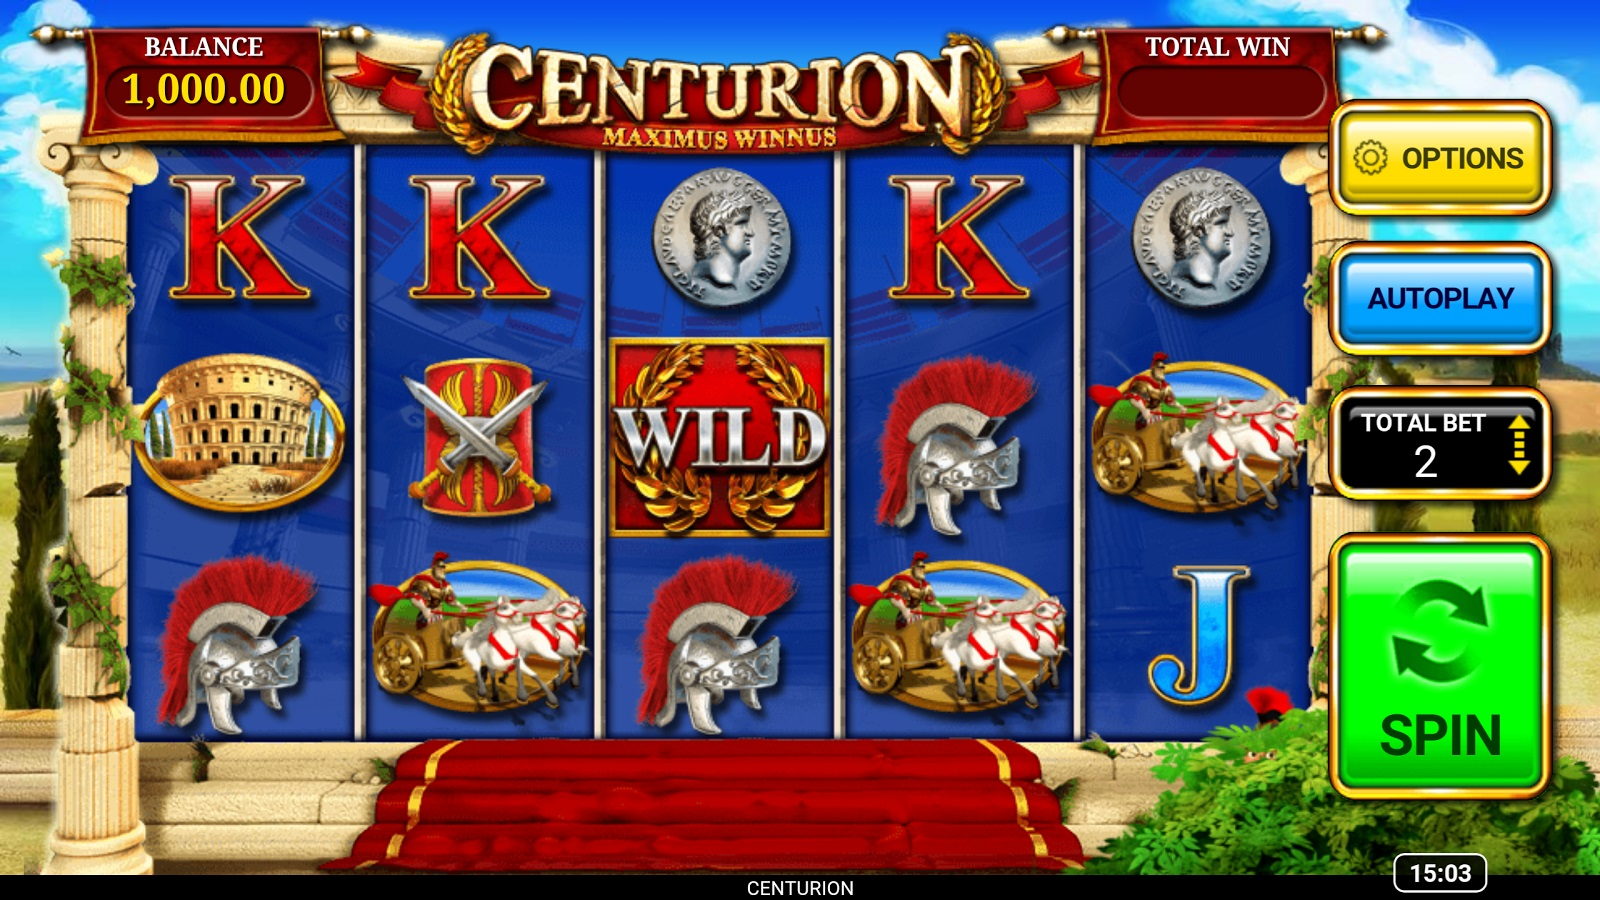 Image result for Review of gameplay on Centurion Slot